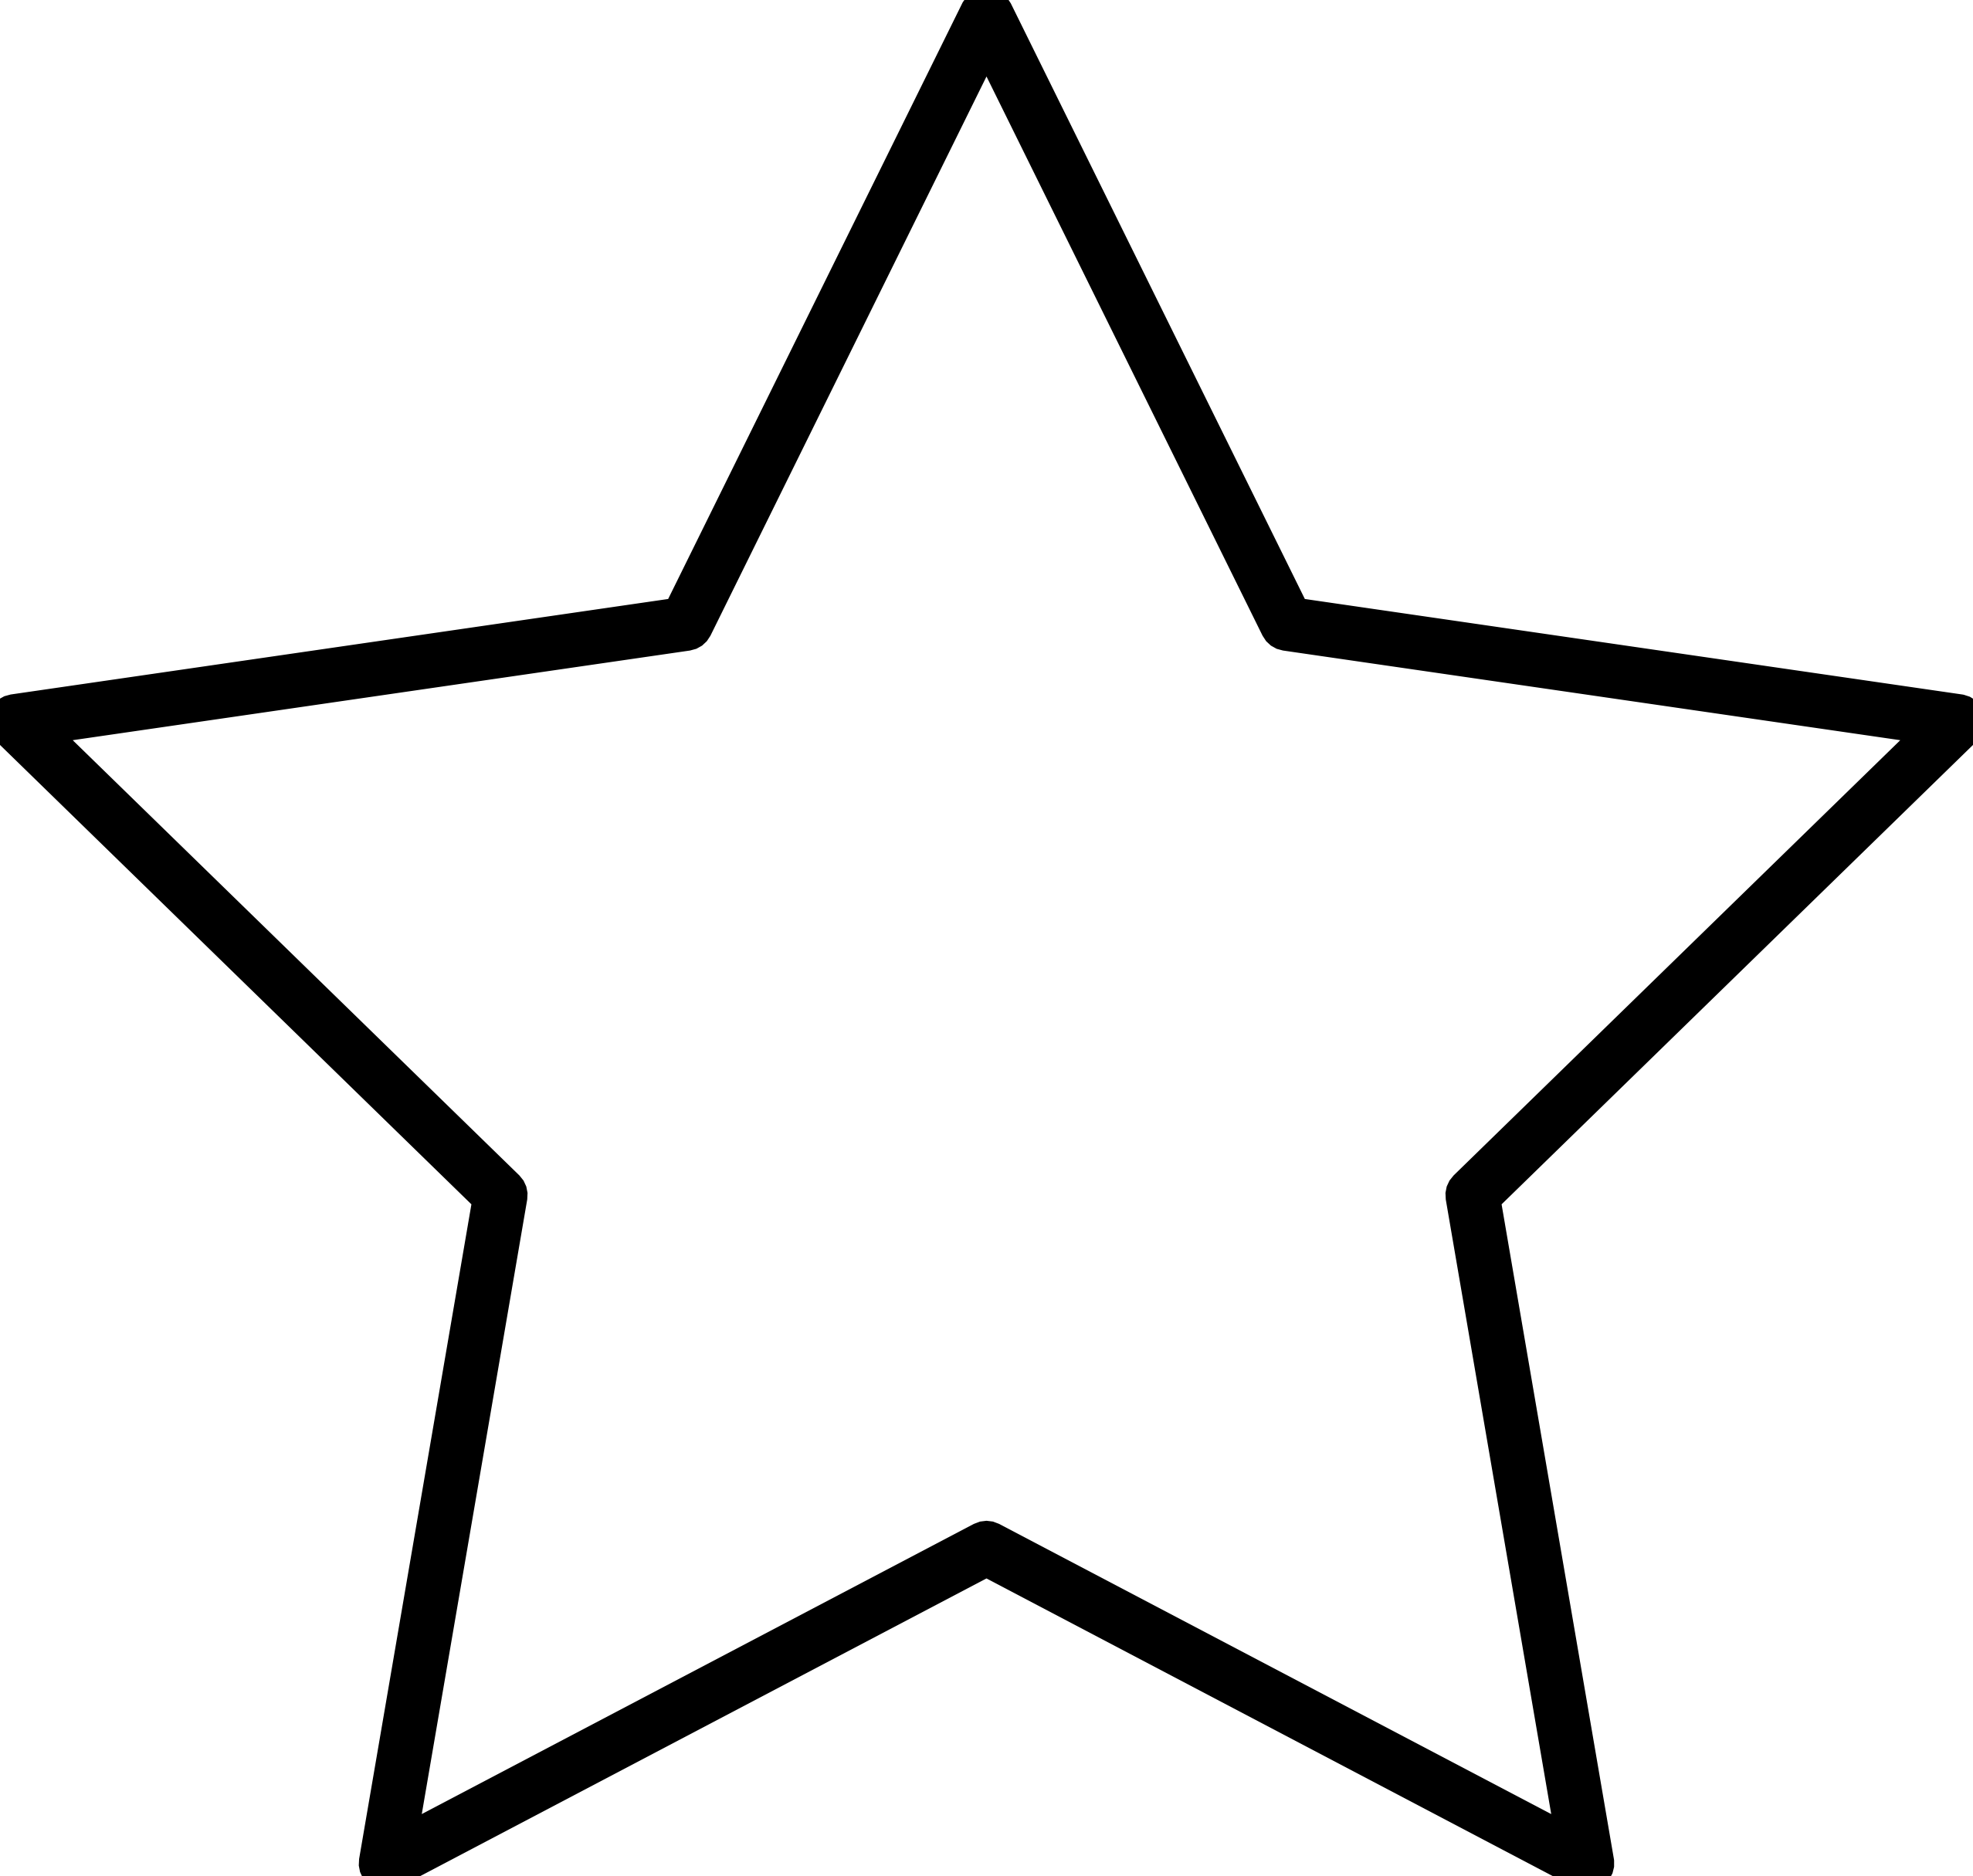 Star clipart large picture freeuse library Star Of David Silhouette at GetDrawings.com | Free for personal use ... picture freeuse library